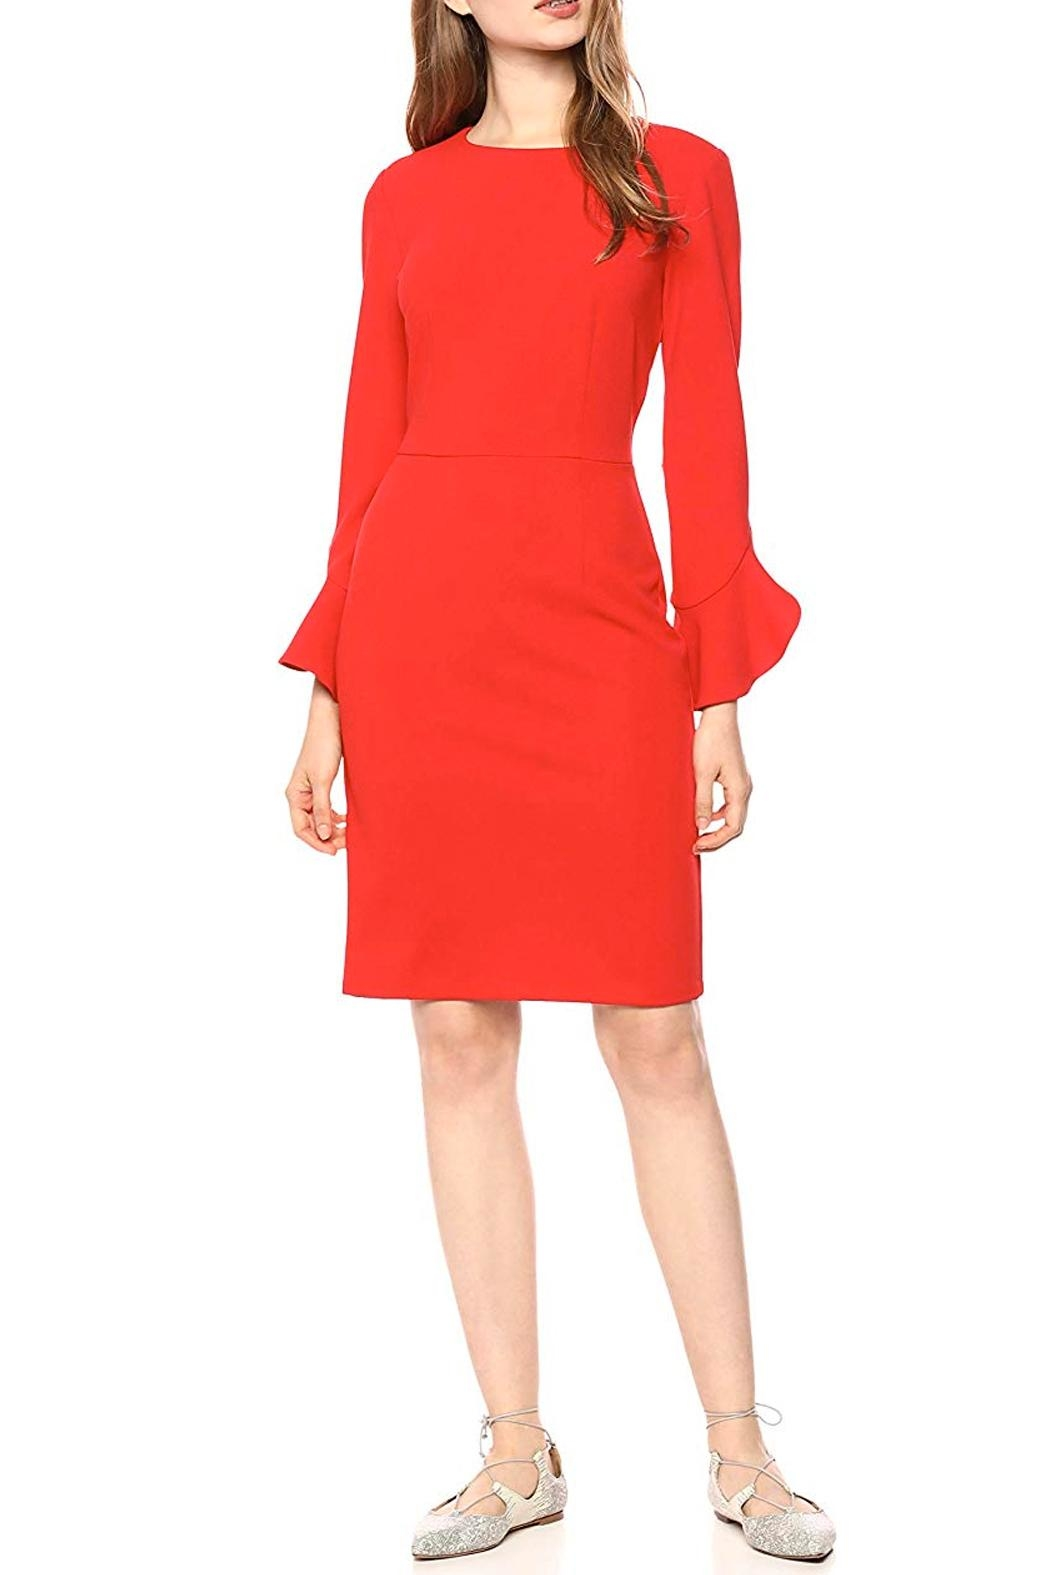 Donna Morgan Ruffle Sleeve Dress - Main Image